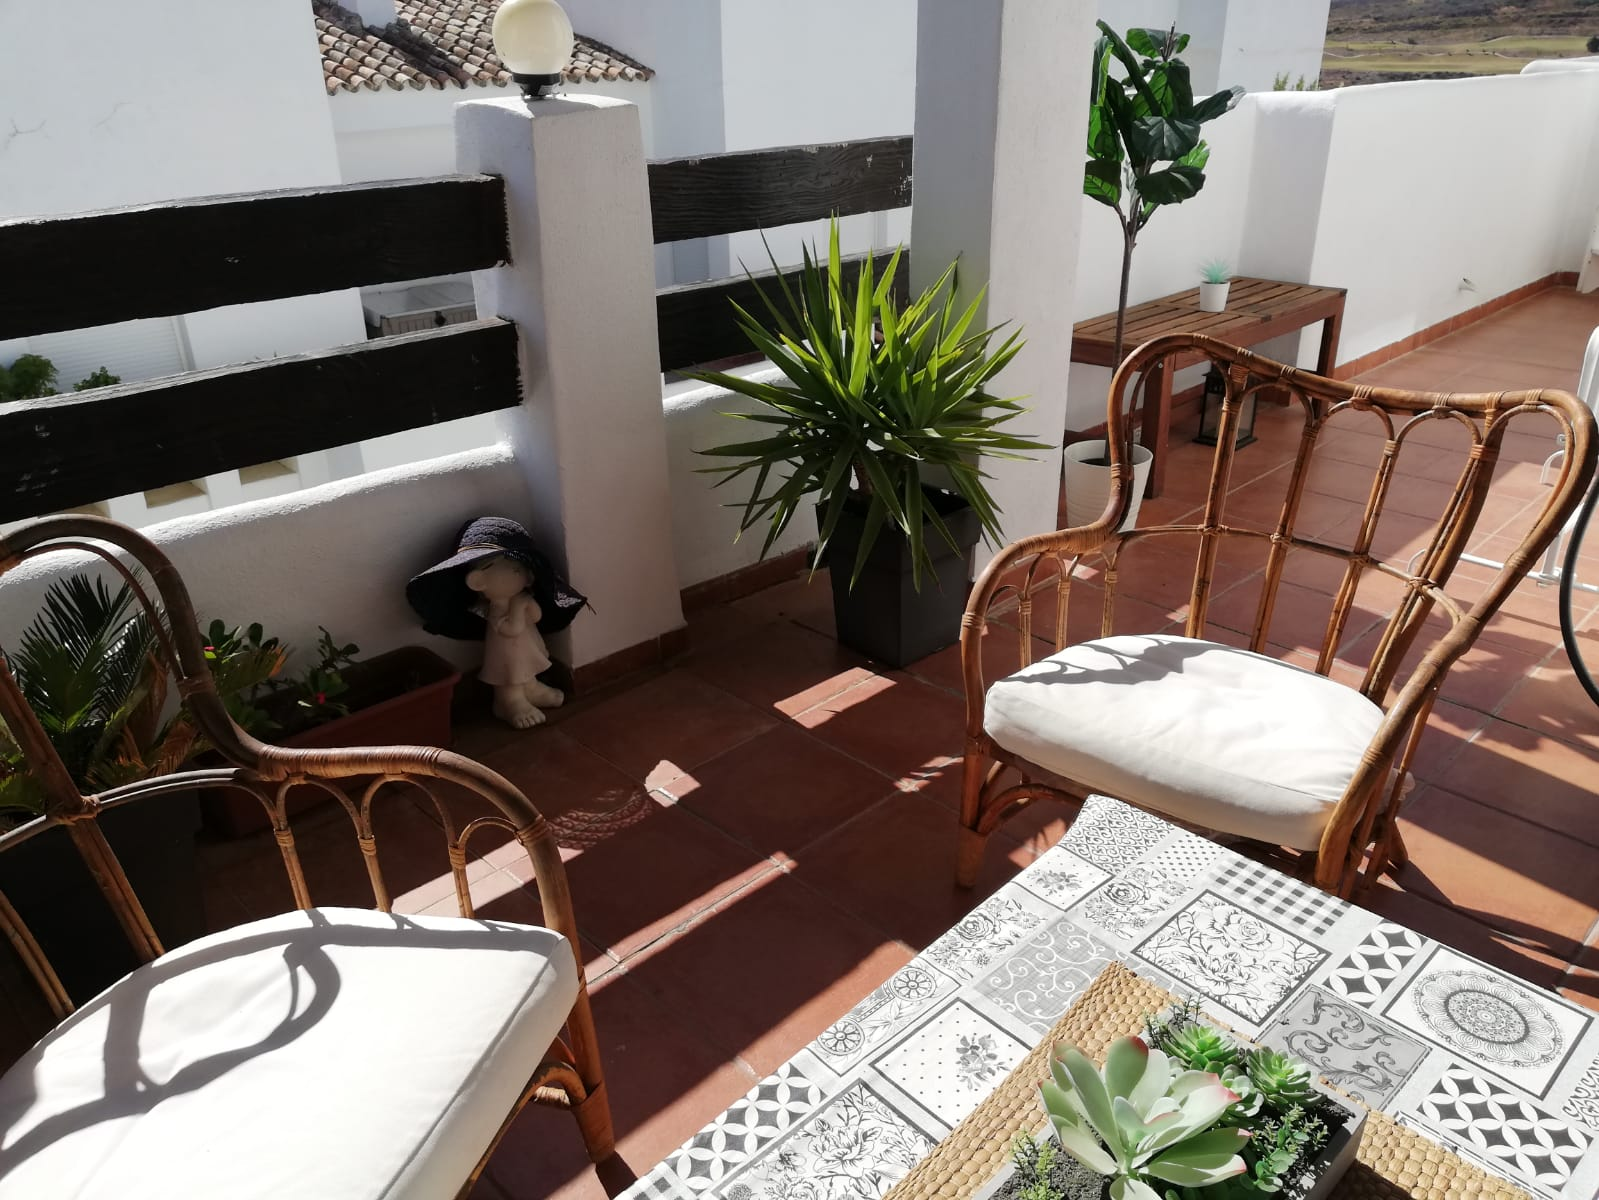 2 bedroom penthouse in Valle Romano opposite the golf course for rent - mibgroup.es